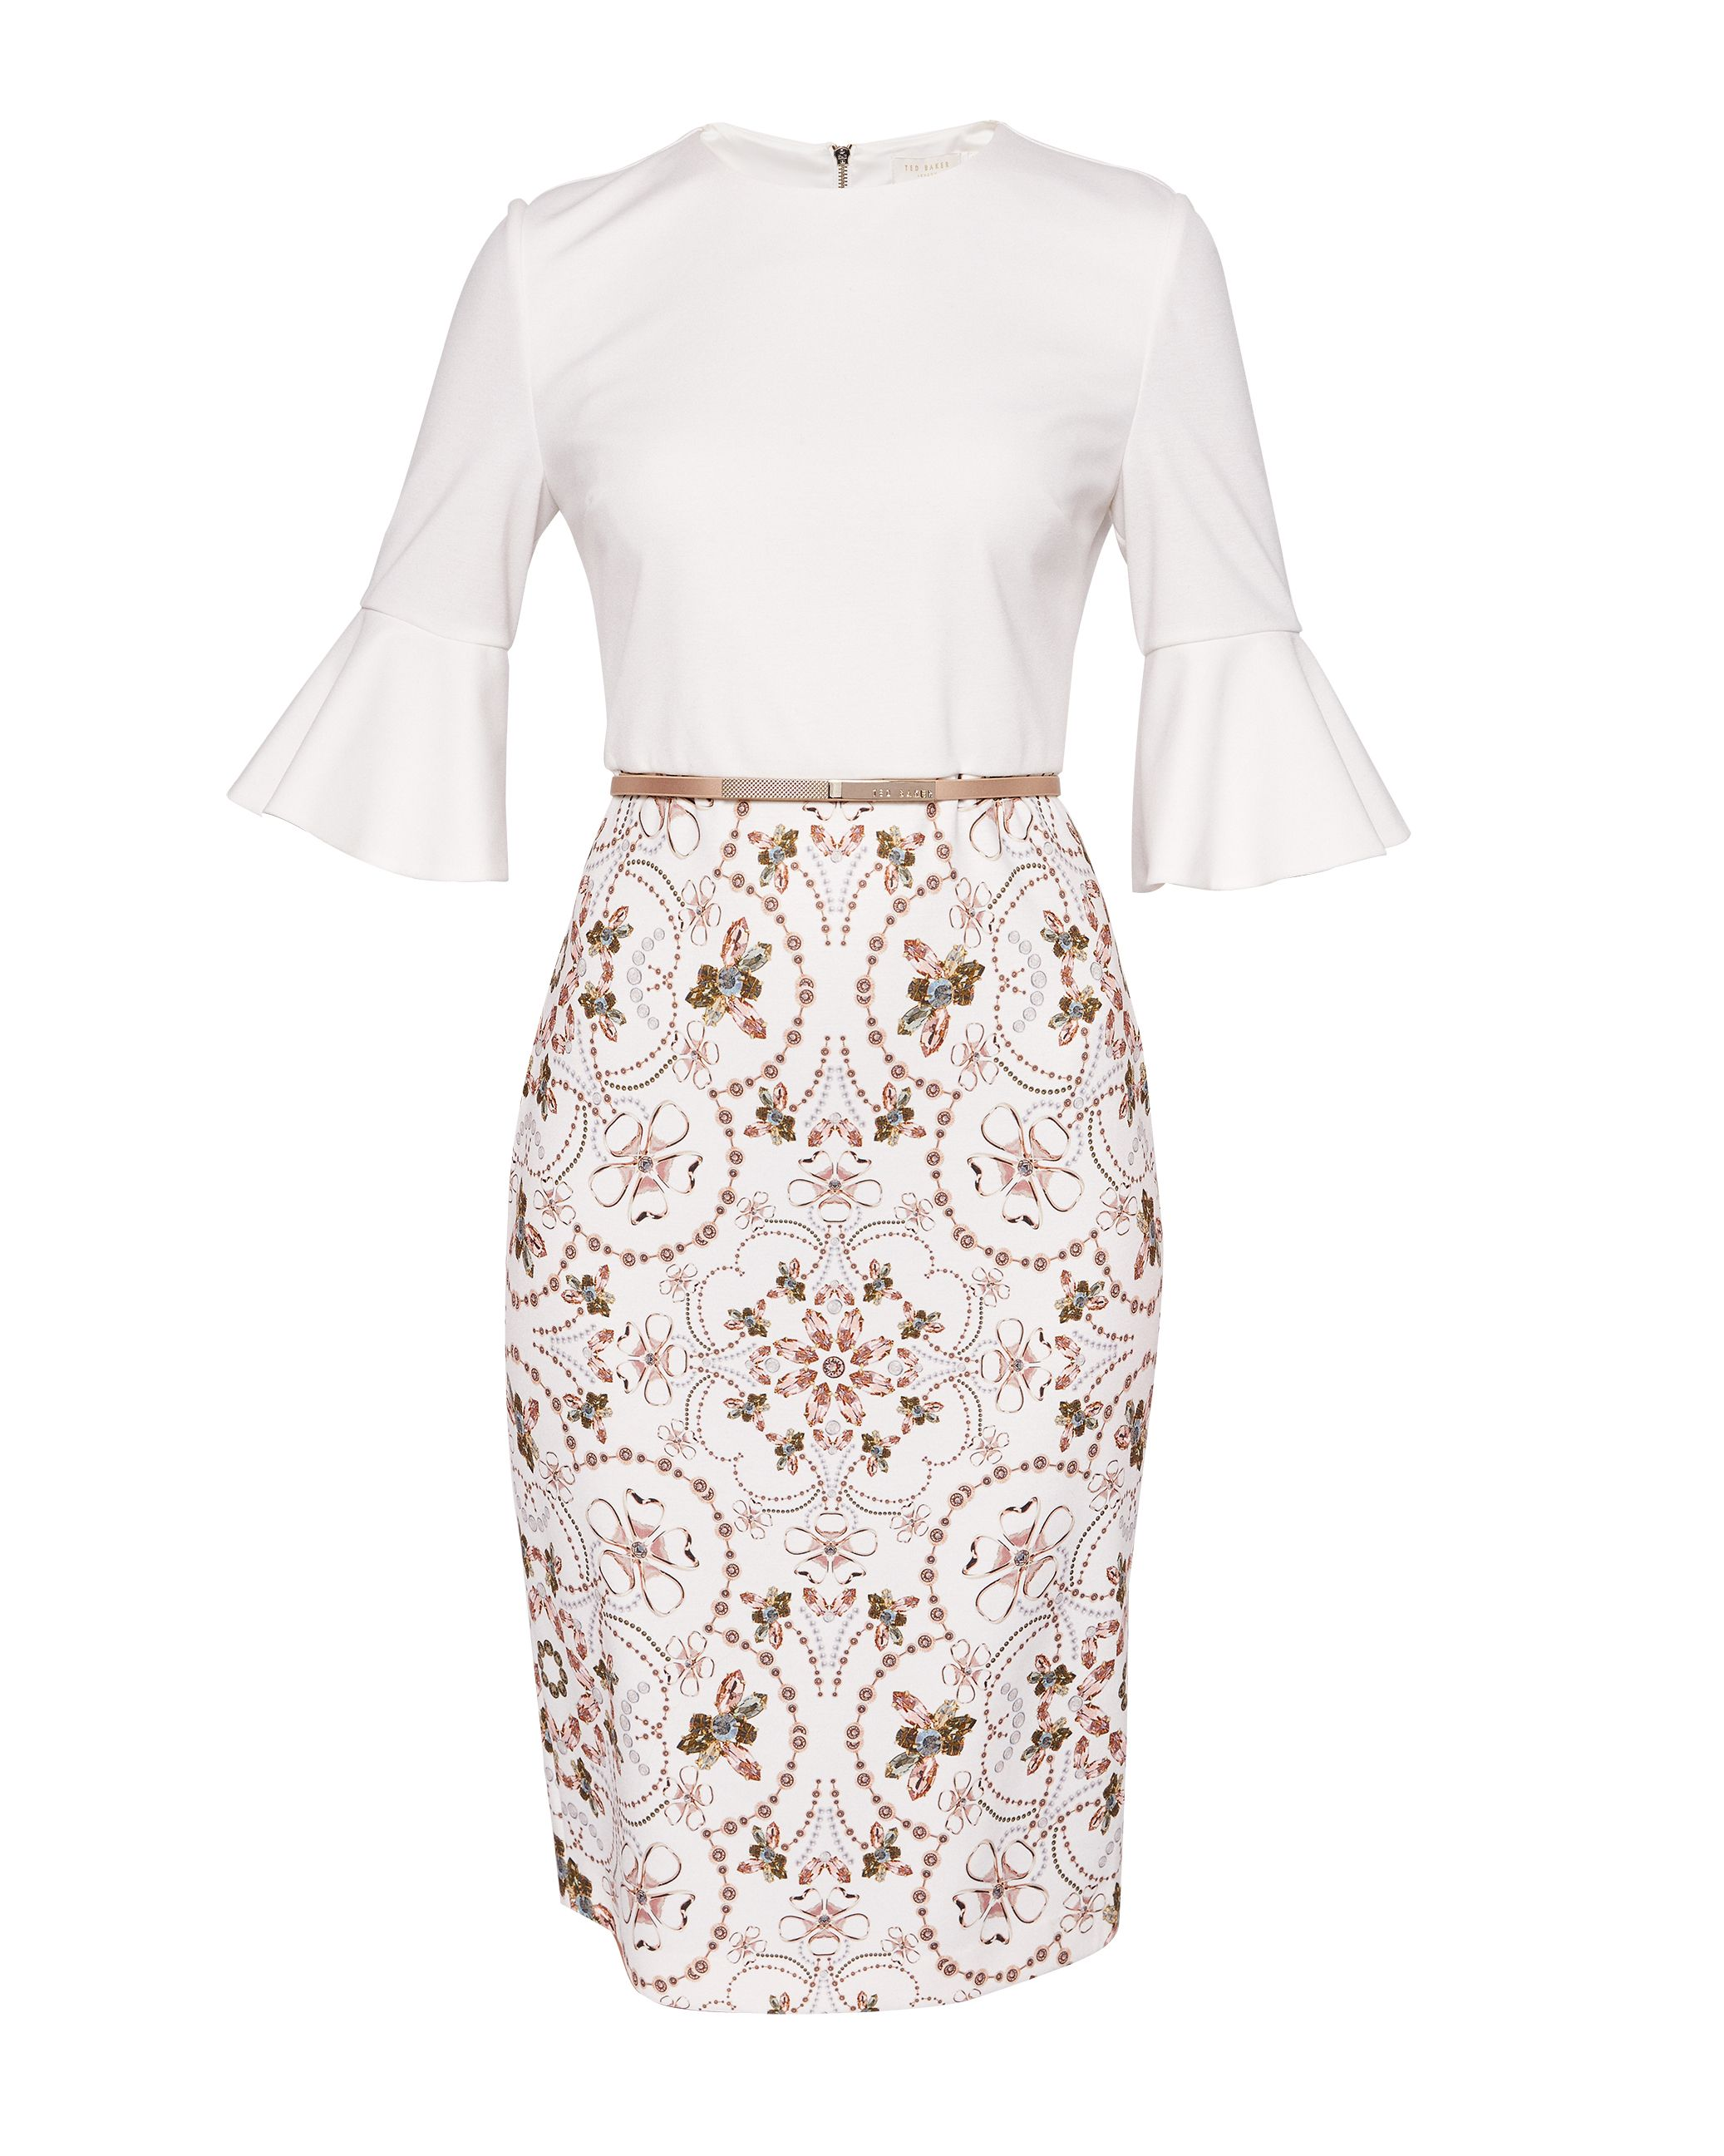 Ted Baker Dresses | Buy your Ted Baker Dress - House of Fraser